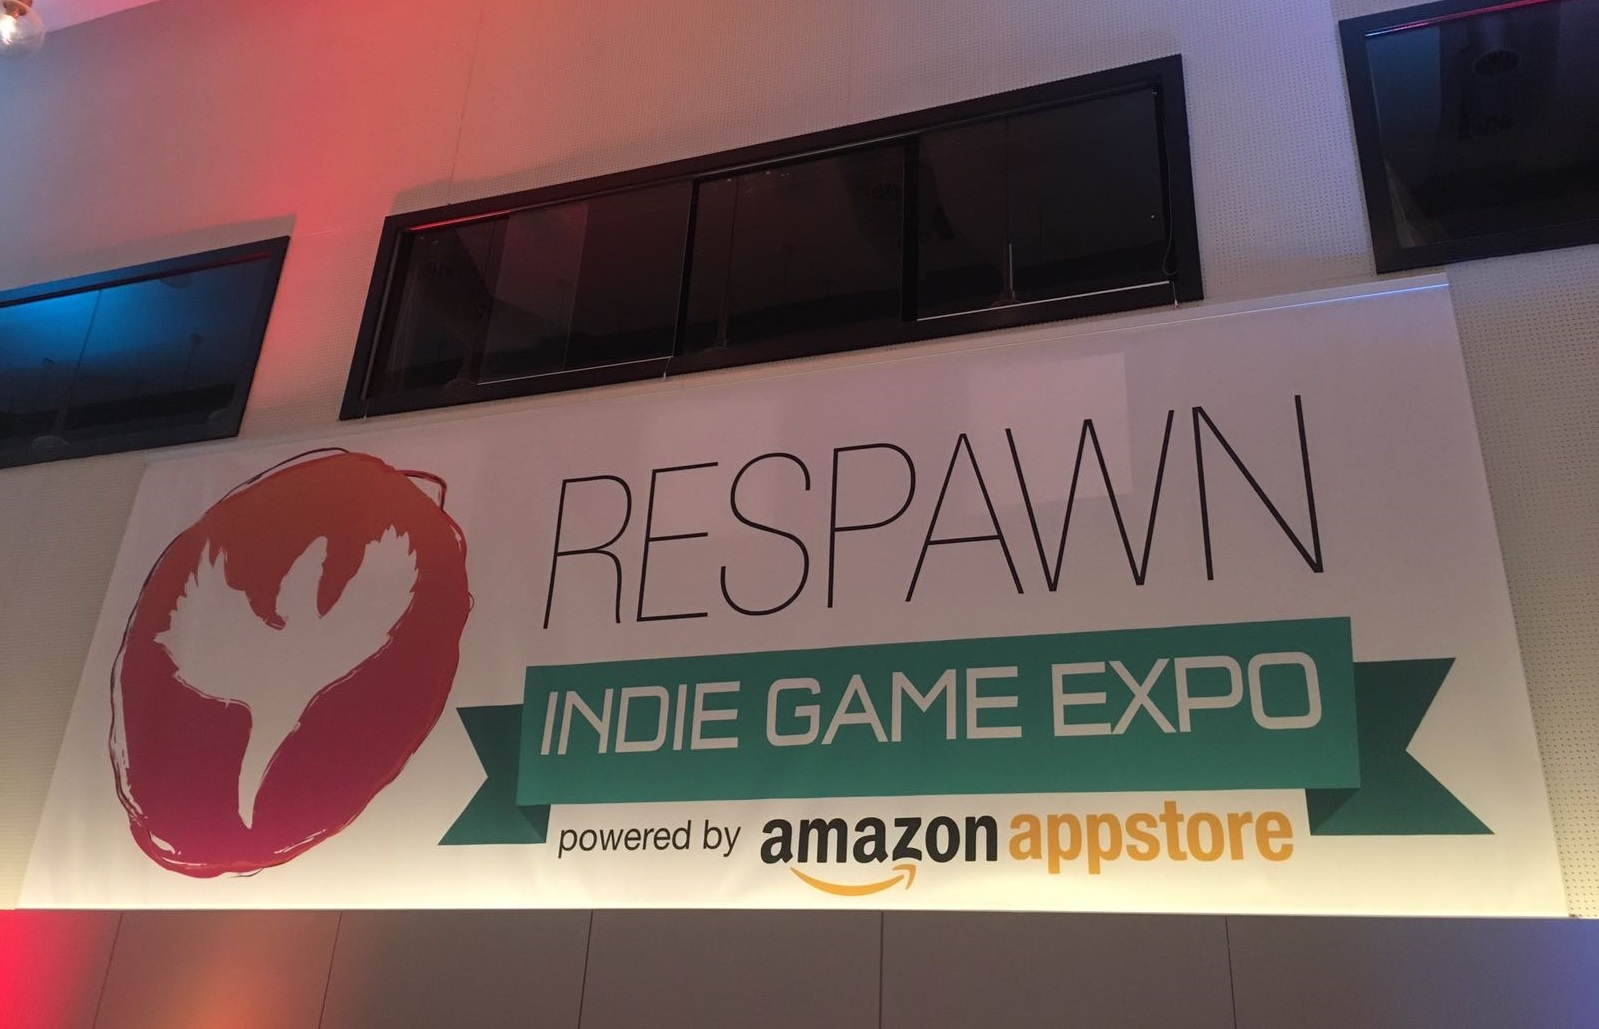 Respawn Indie Game Expo 2017